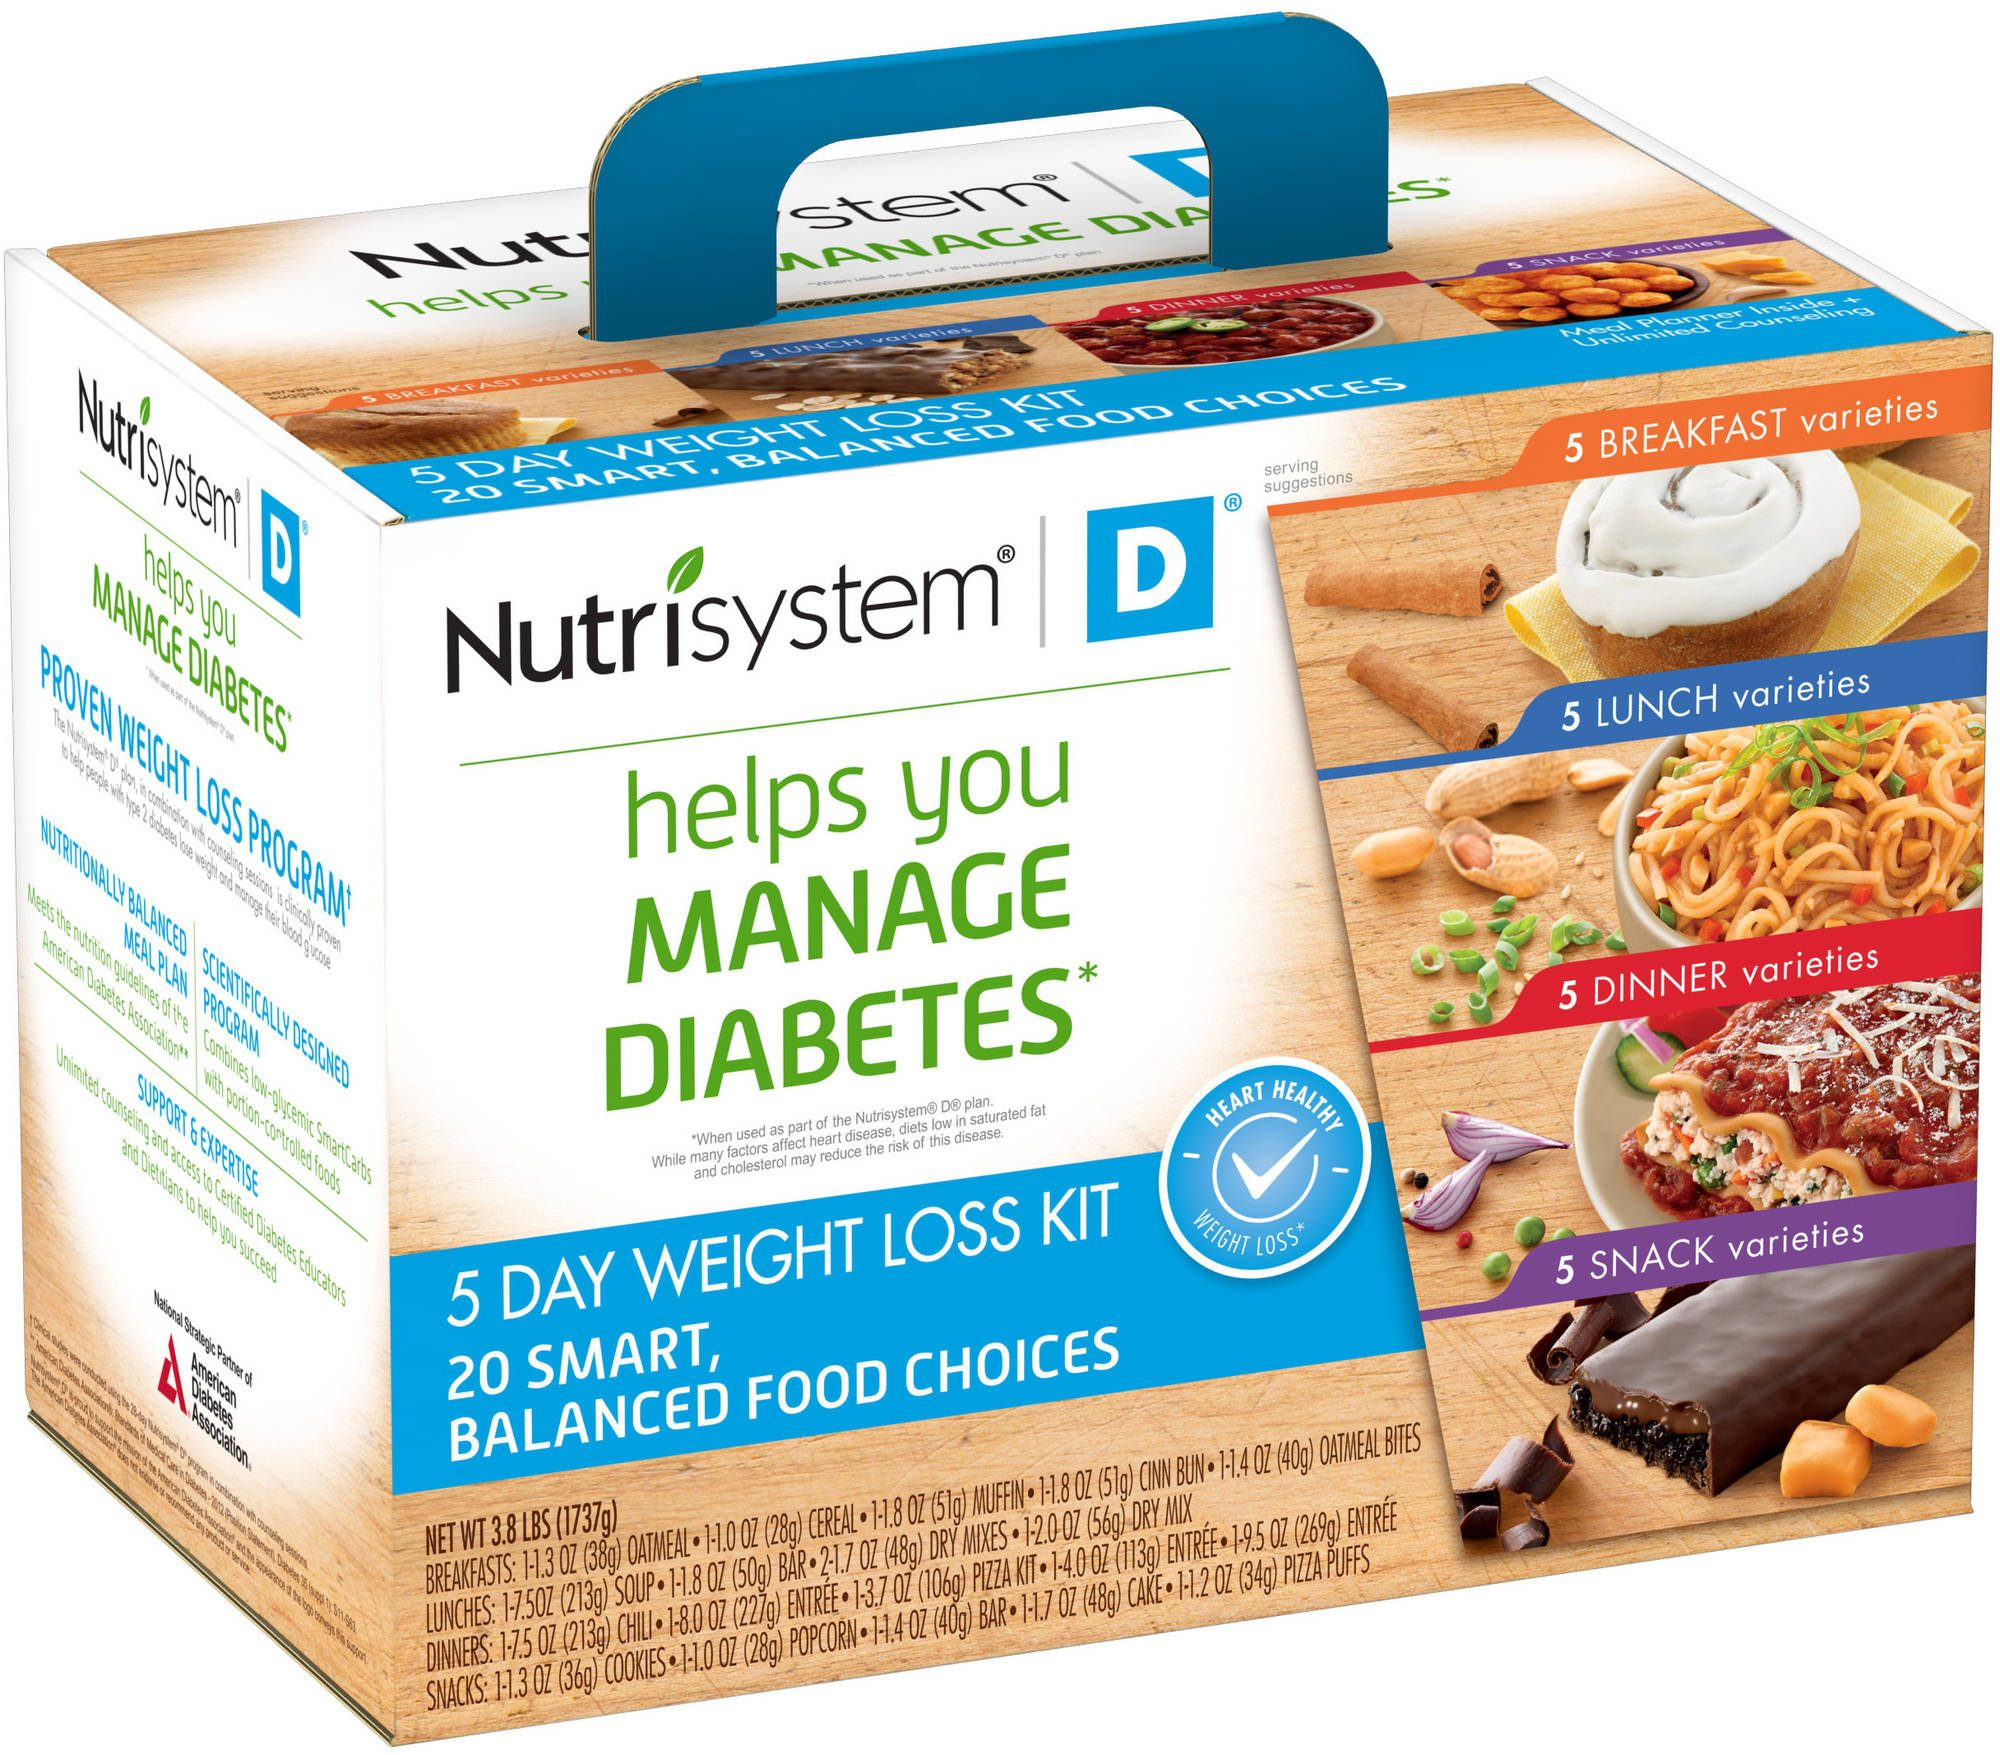 37% Off Weight Watchers Promo Code and Coupons